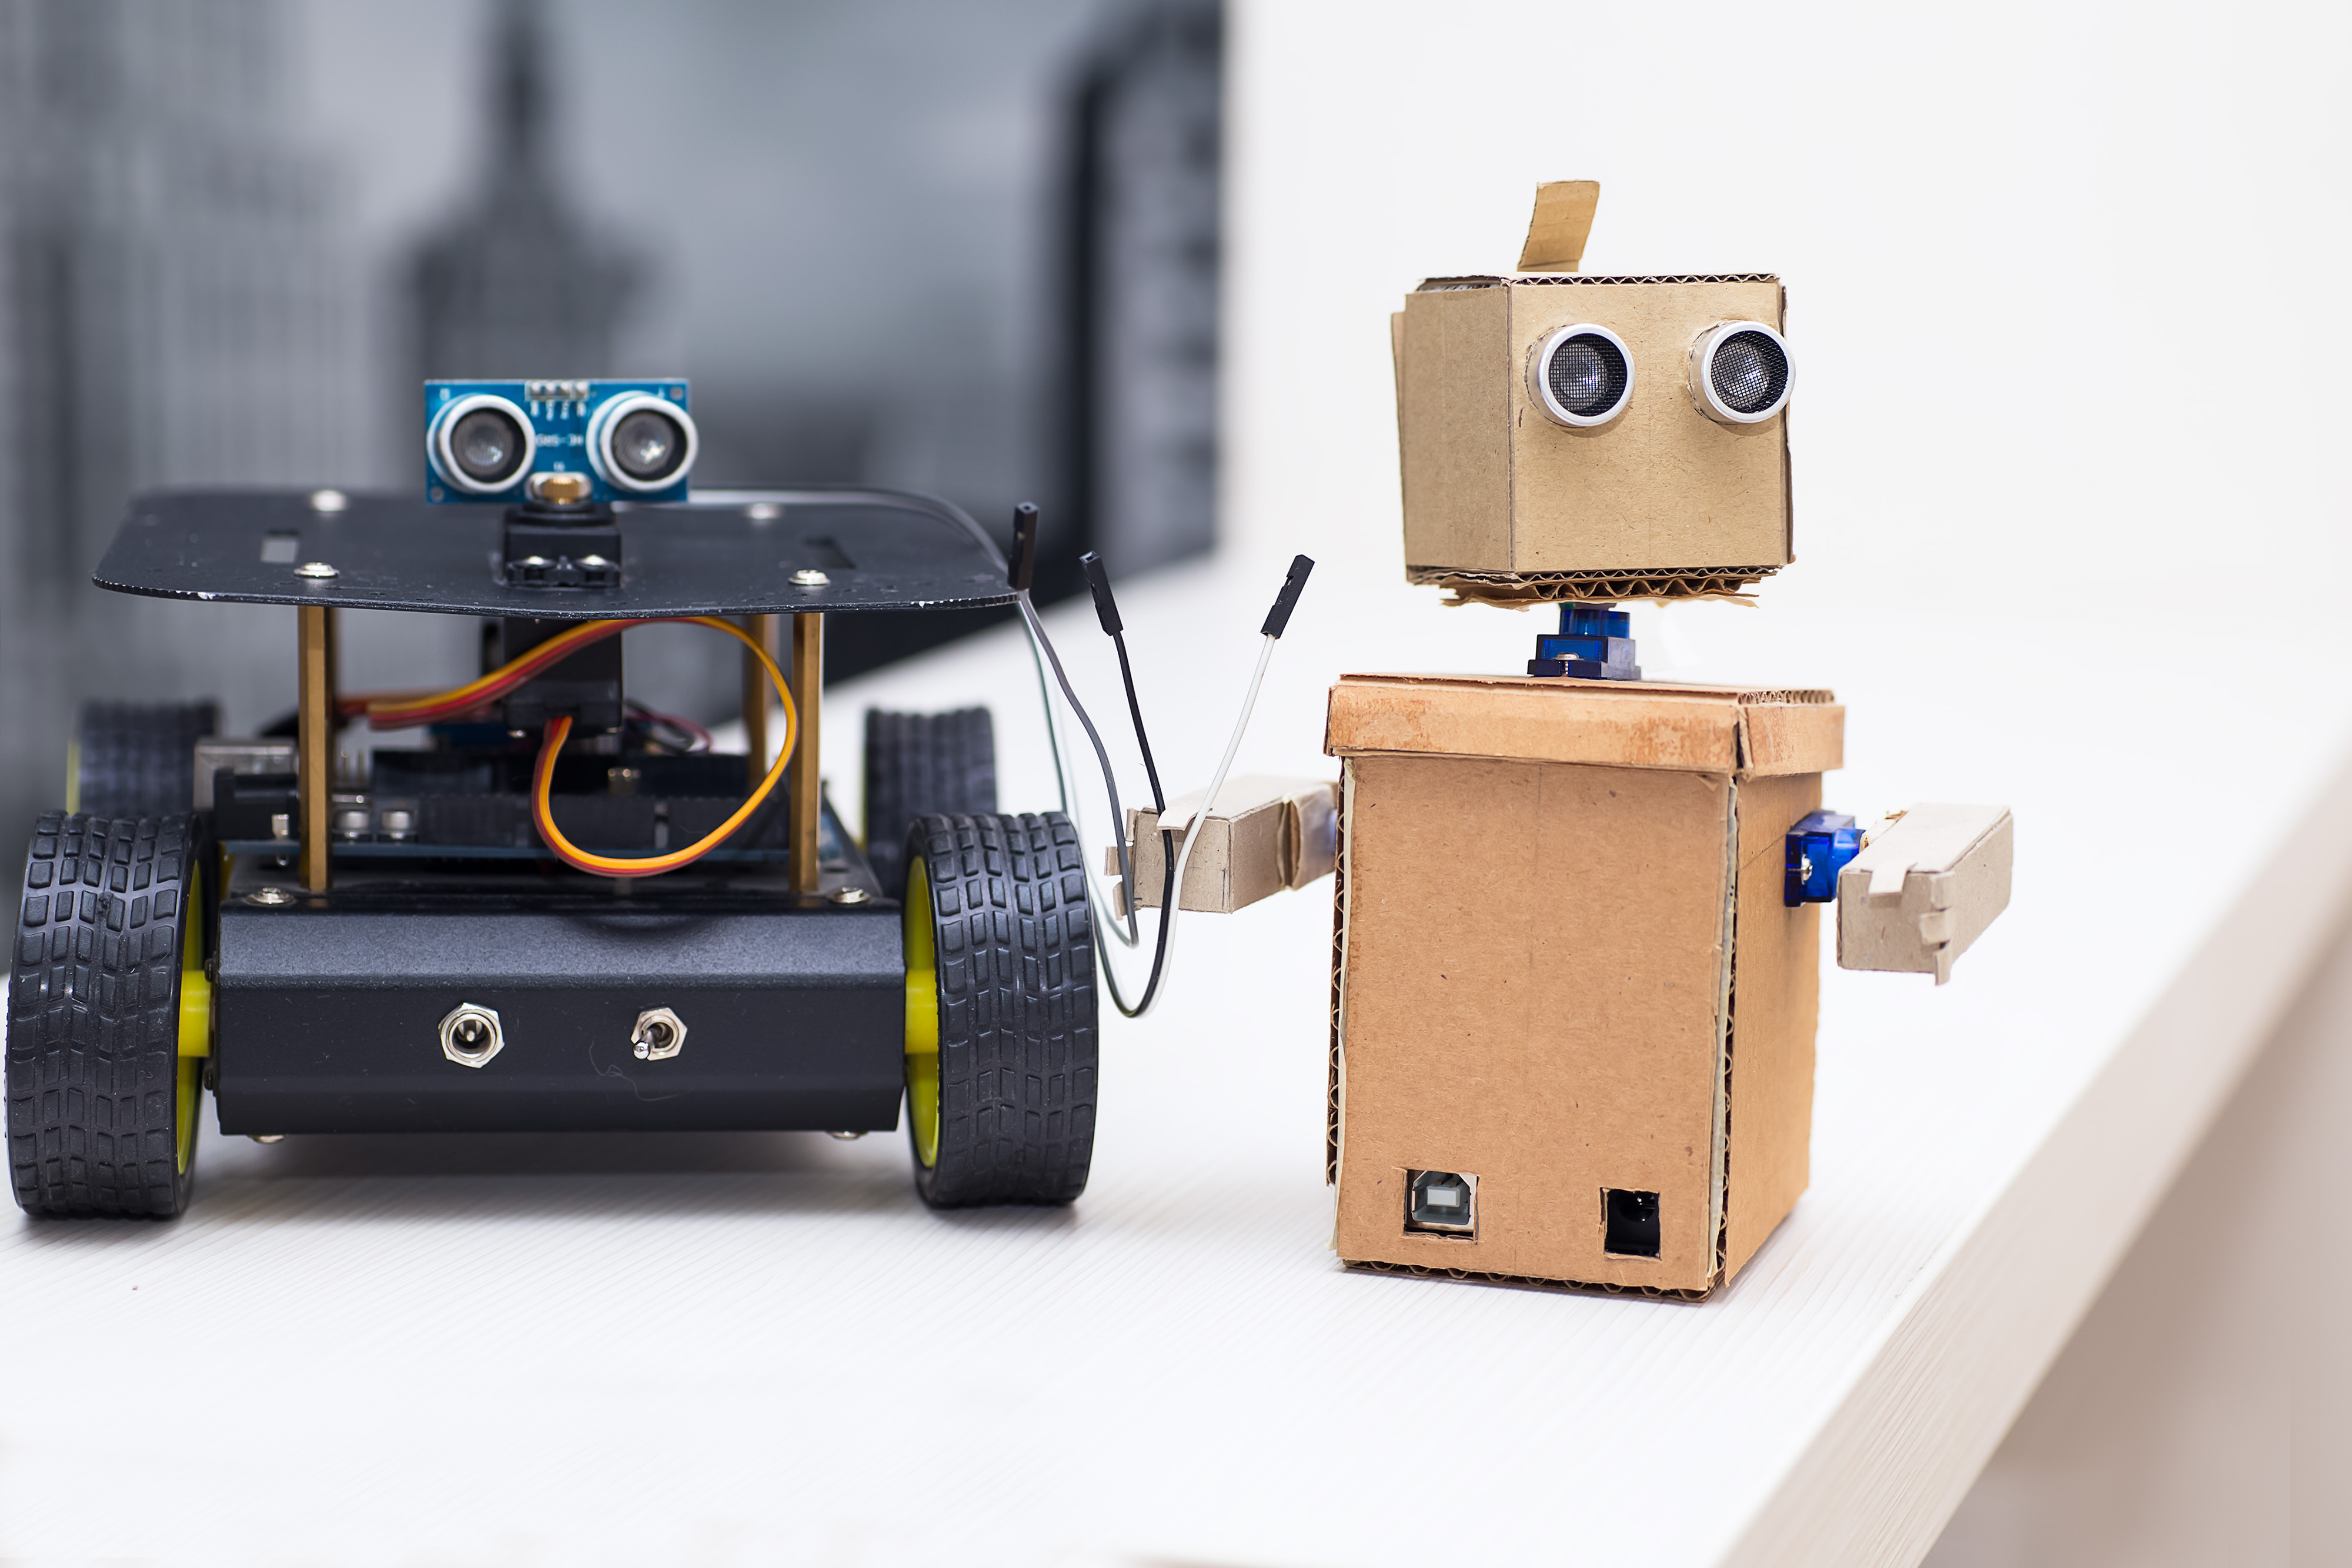 robot keeps wires and stands next to the other robot